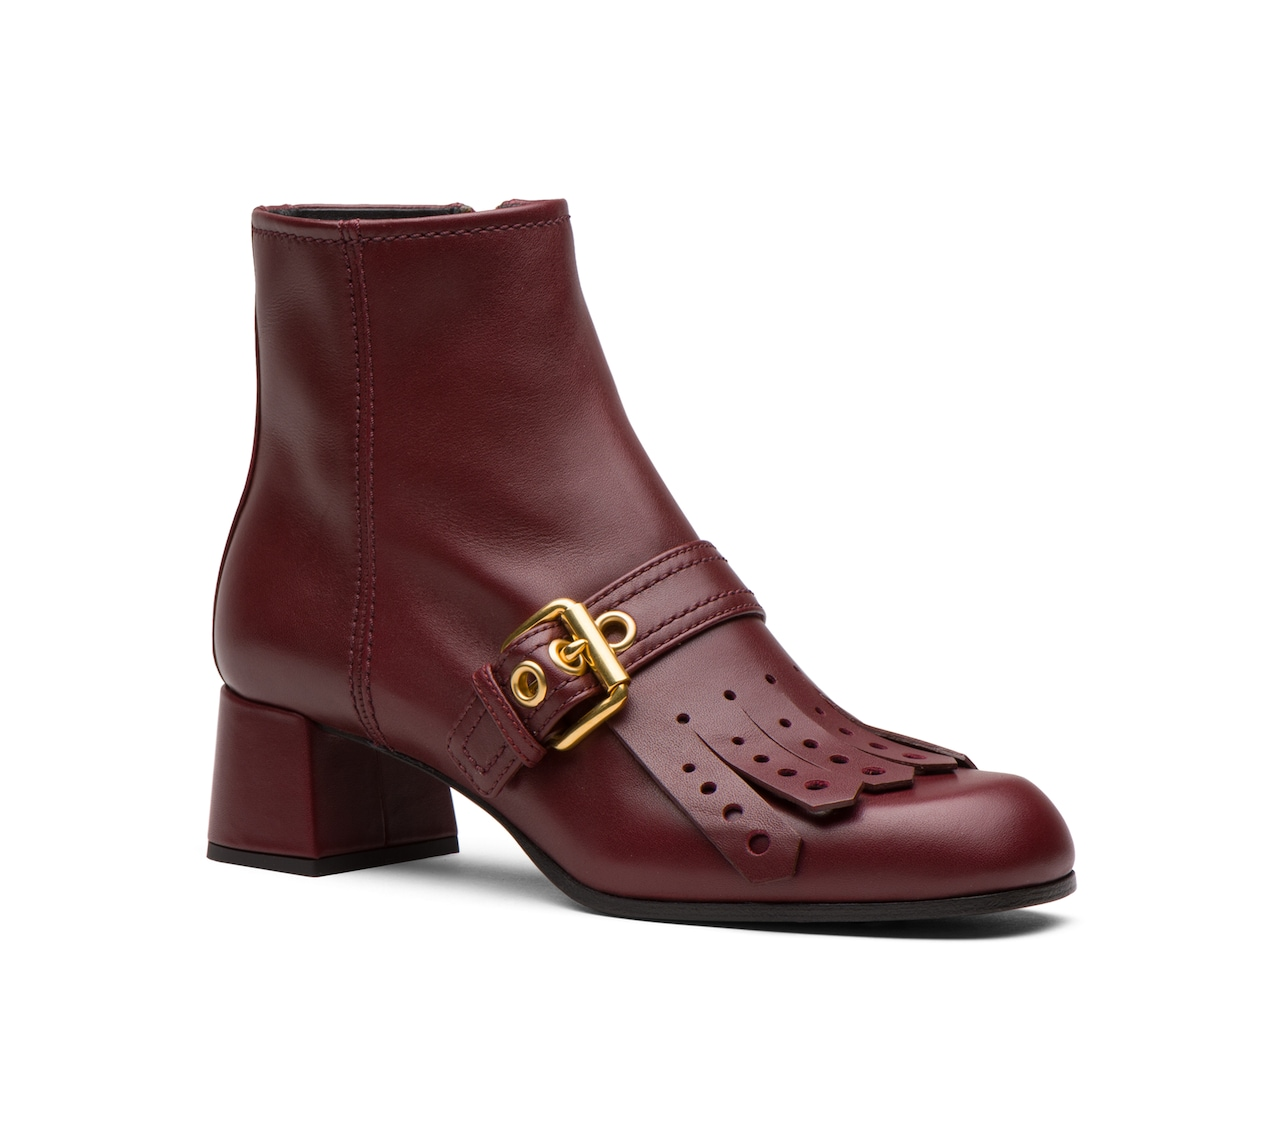 CALF LEATHER BOOTIES BURGUNDY